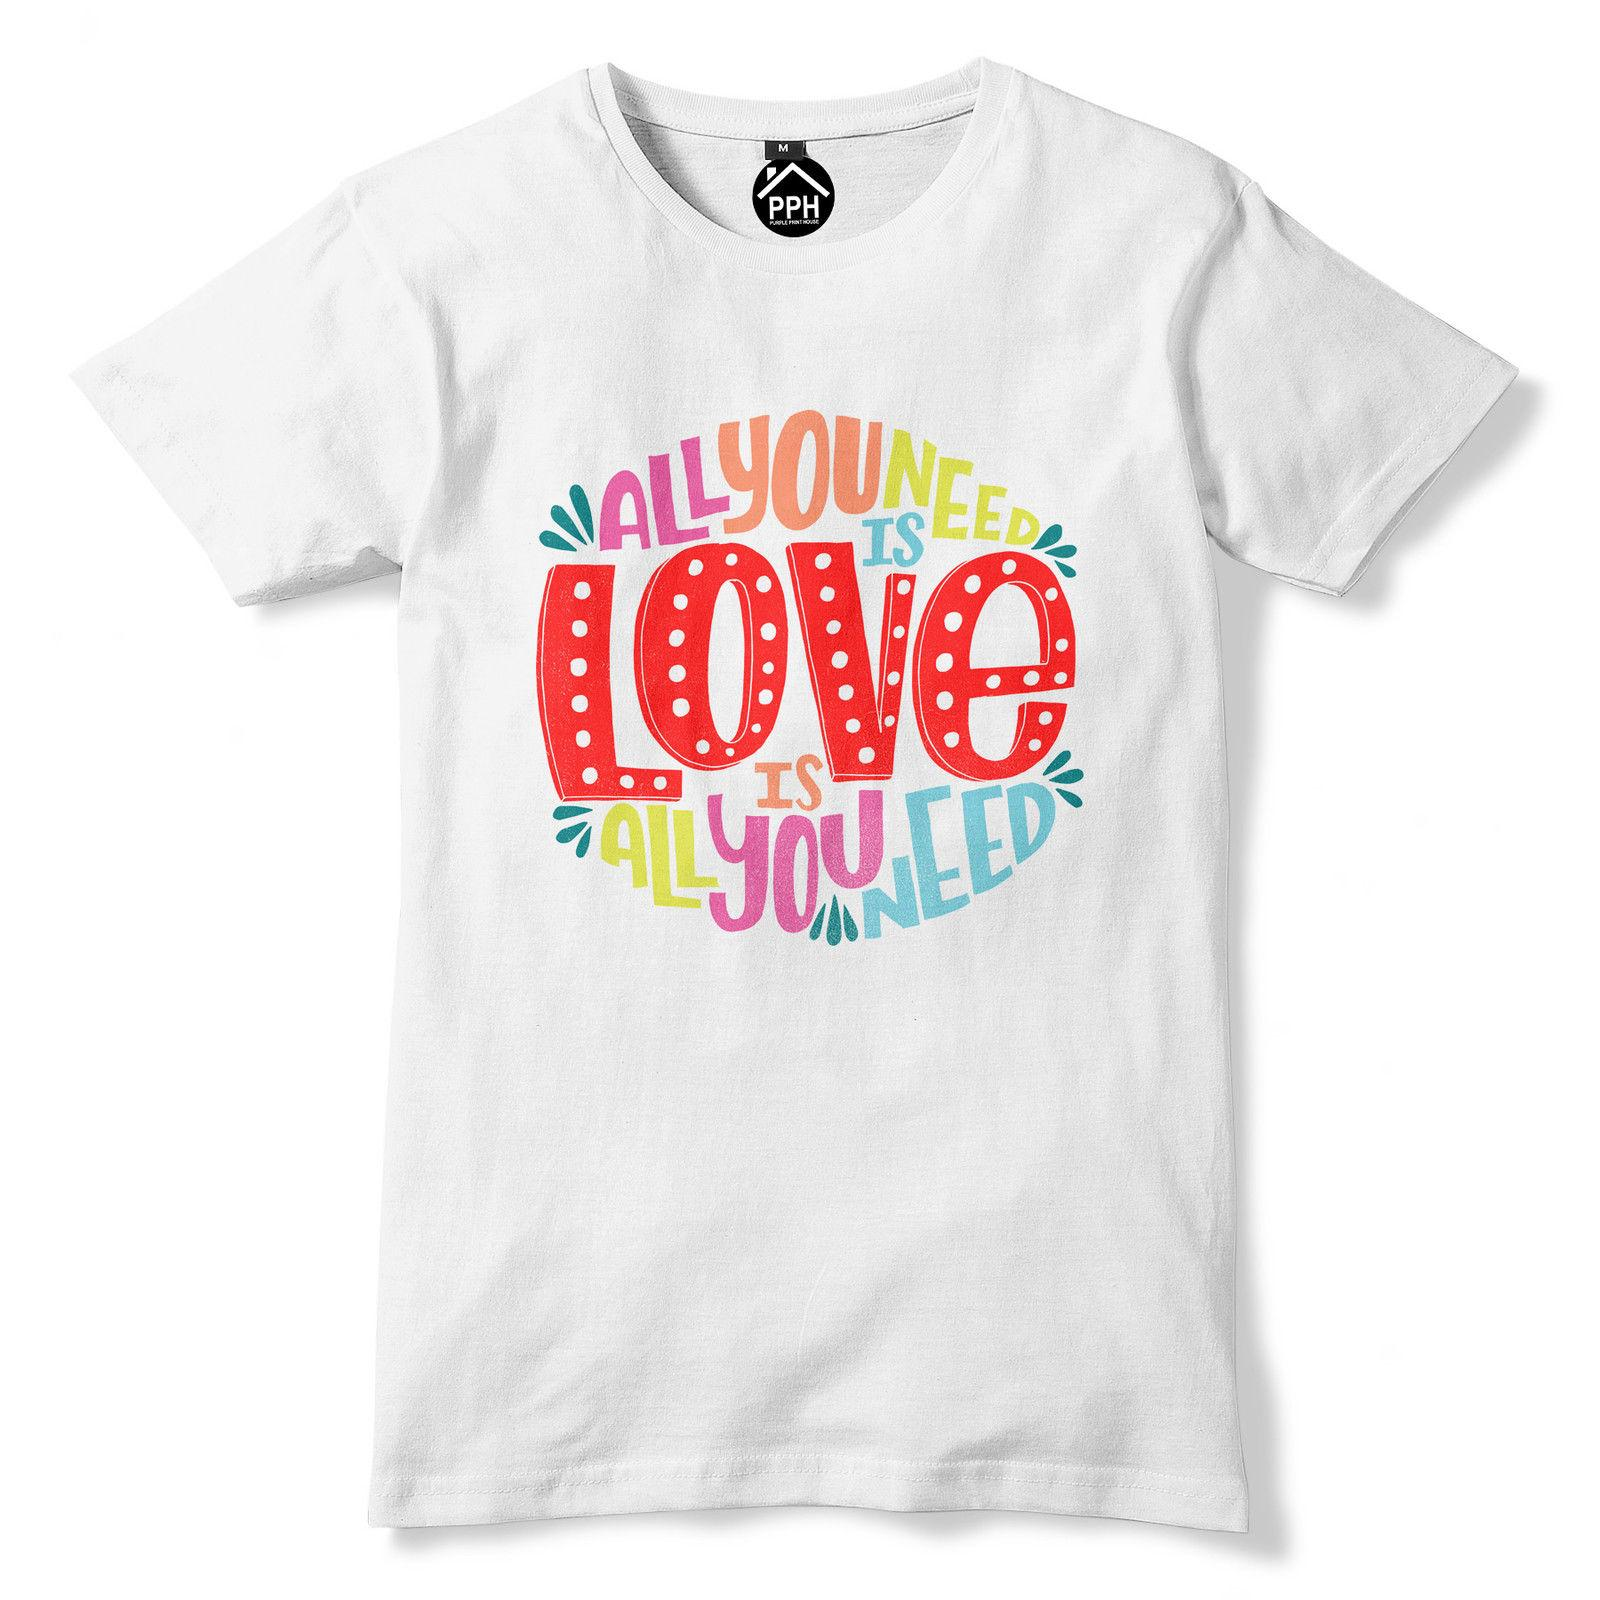 4b21a415b All You Need Is Love Music T Shirt Bible Quote Song Lyric Top Mens Womens  390 Funny Unisex Casual Retro T Shirt Design Tee Shirts From  Clothing_dealss, ...